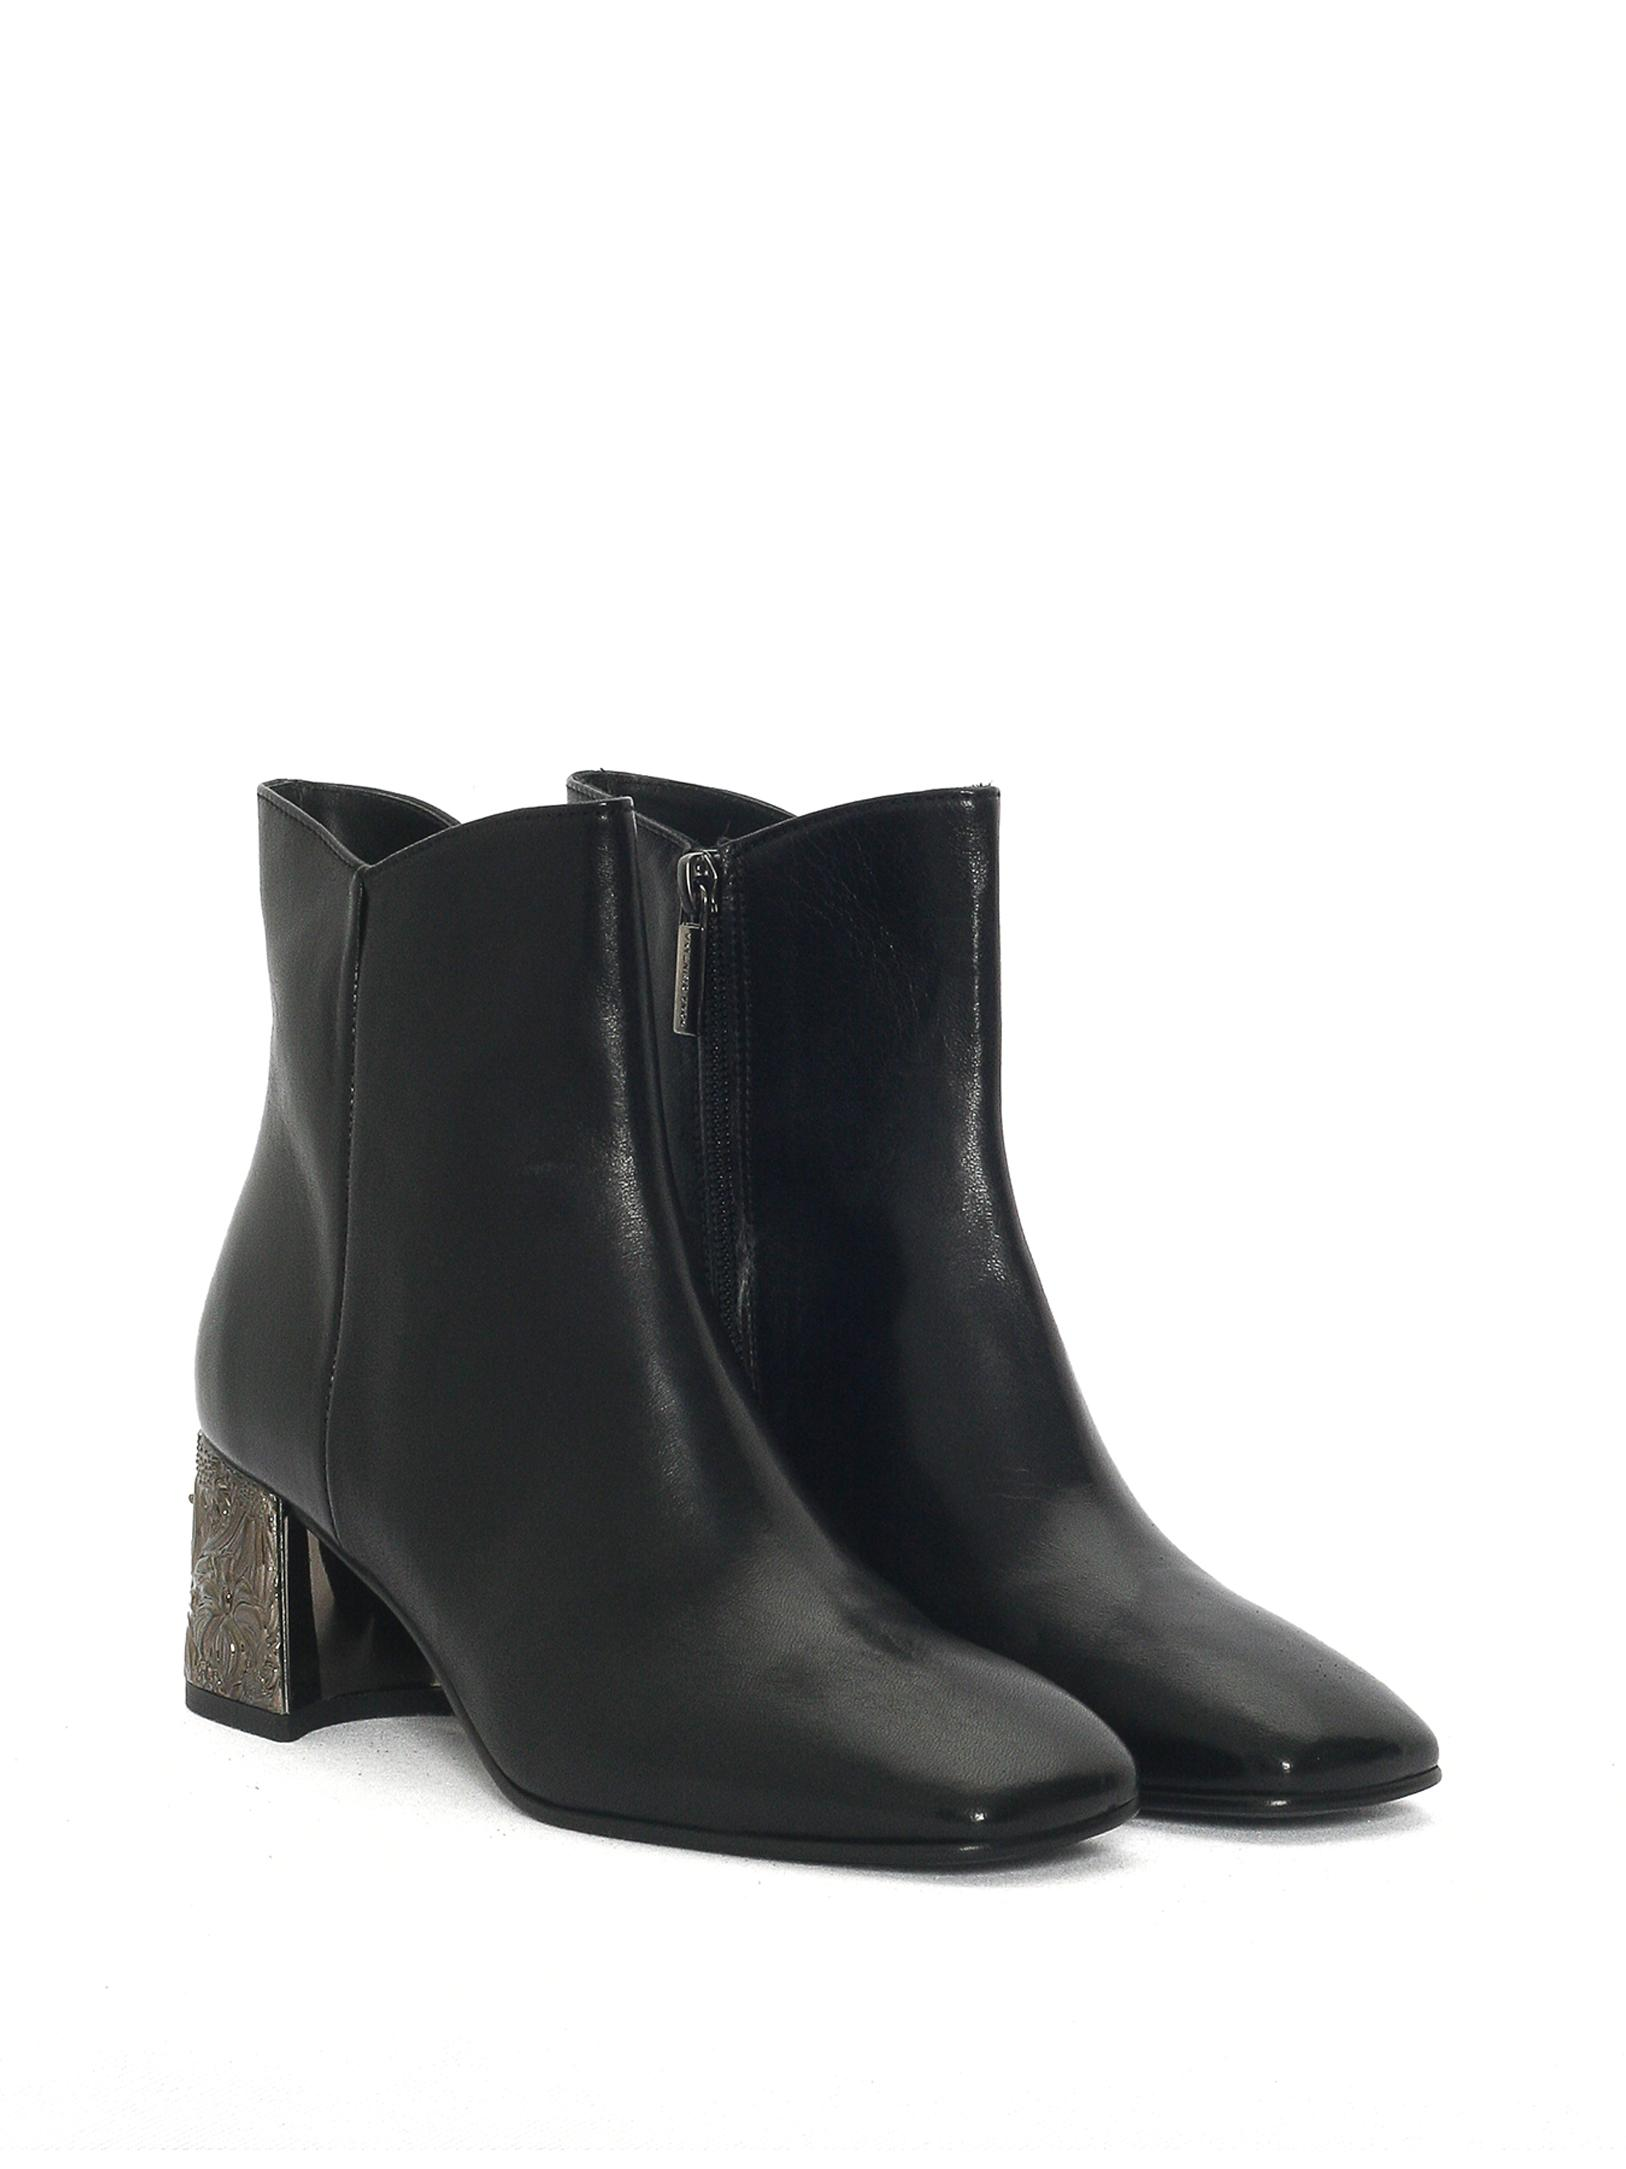 BLACK TEQUILA ANKLE BOOT